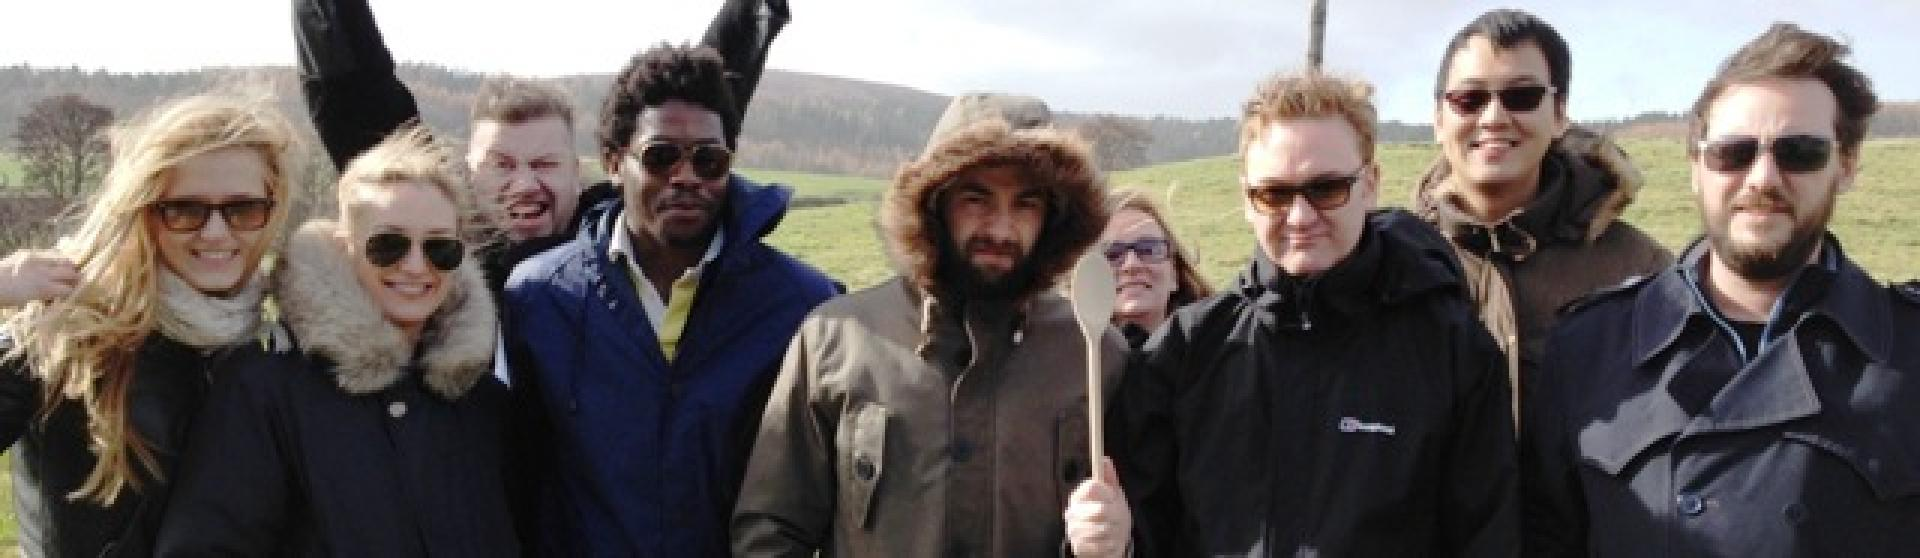 Team Building Scotland - Country Pursuits at Glenfiddich Distillery